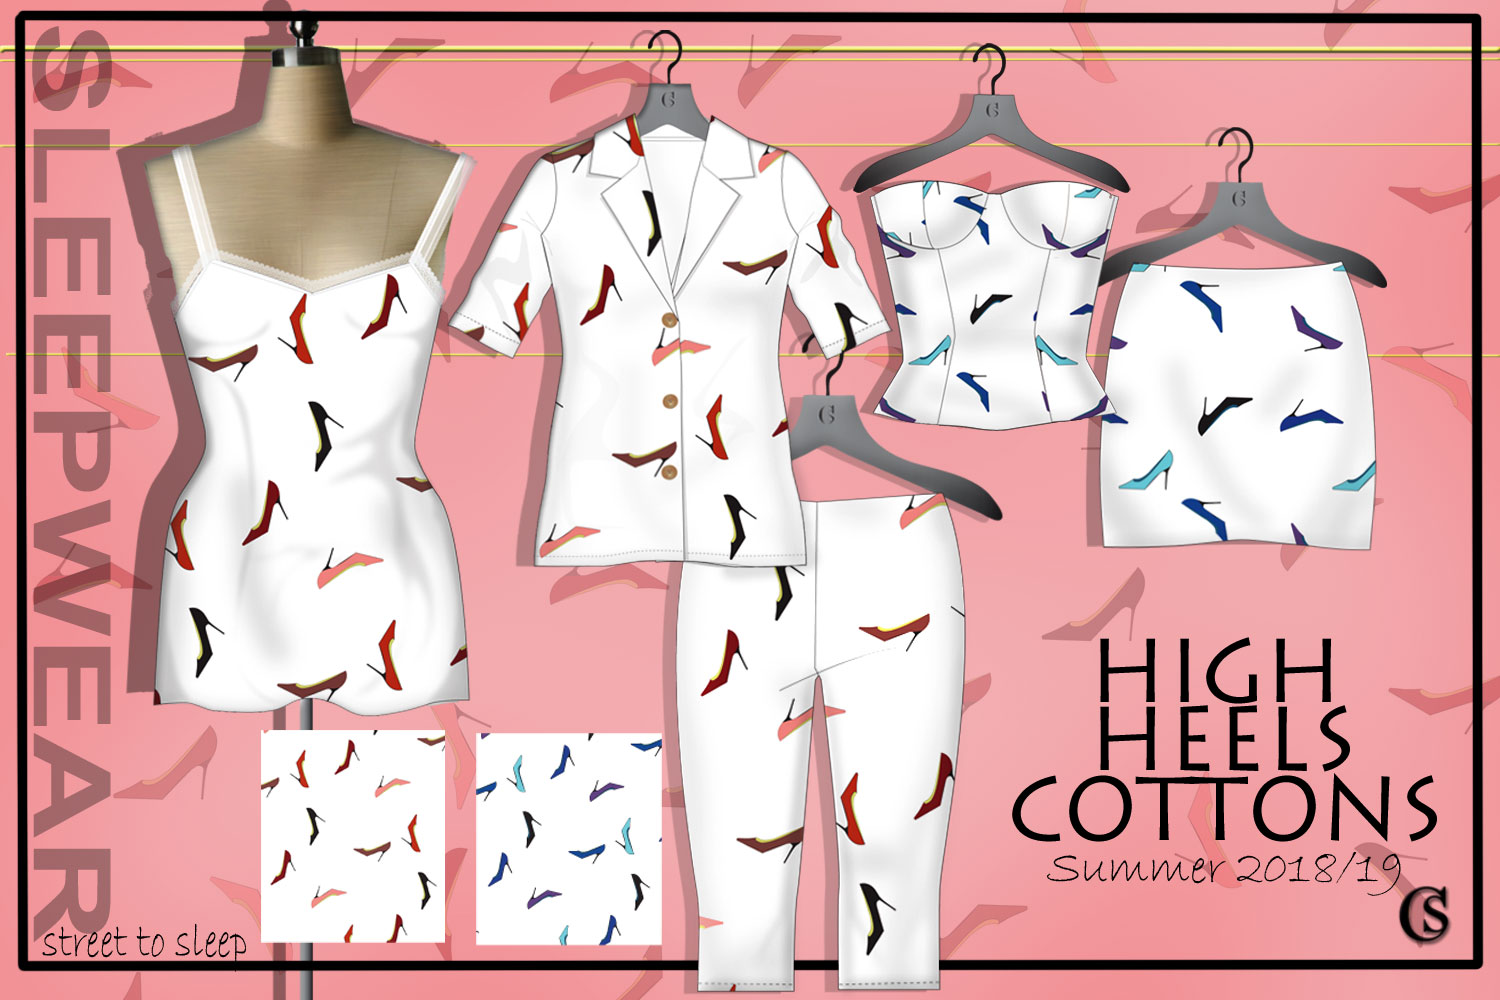 Cotton jersey trend storyboard for 2018/19 CHIARIstyle